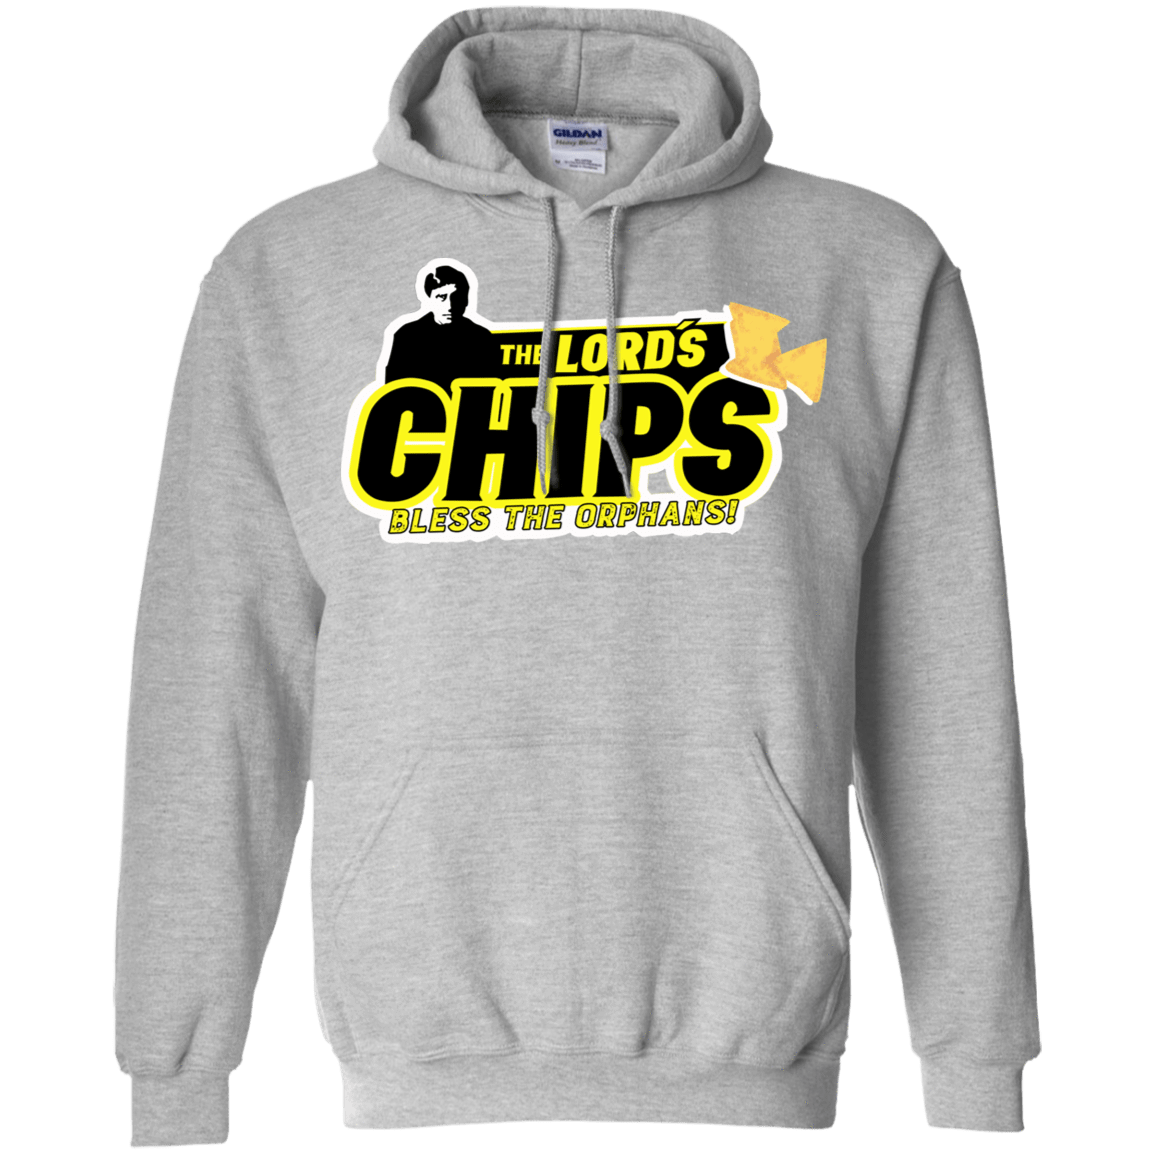 The Lord´s Chips 541-4741-74046944-23111 - Tee Ript